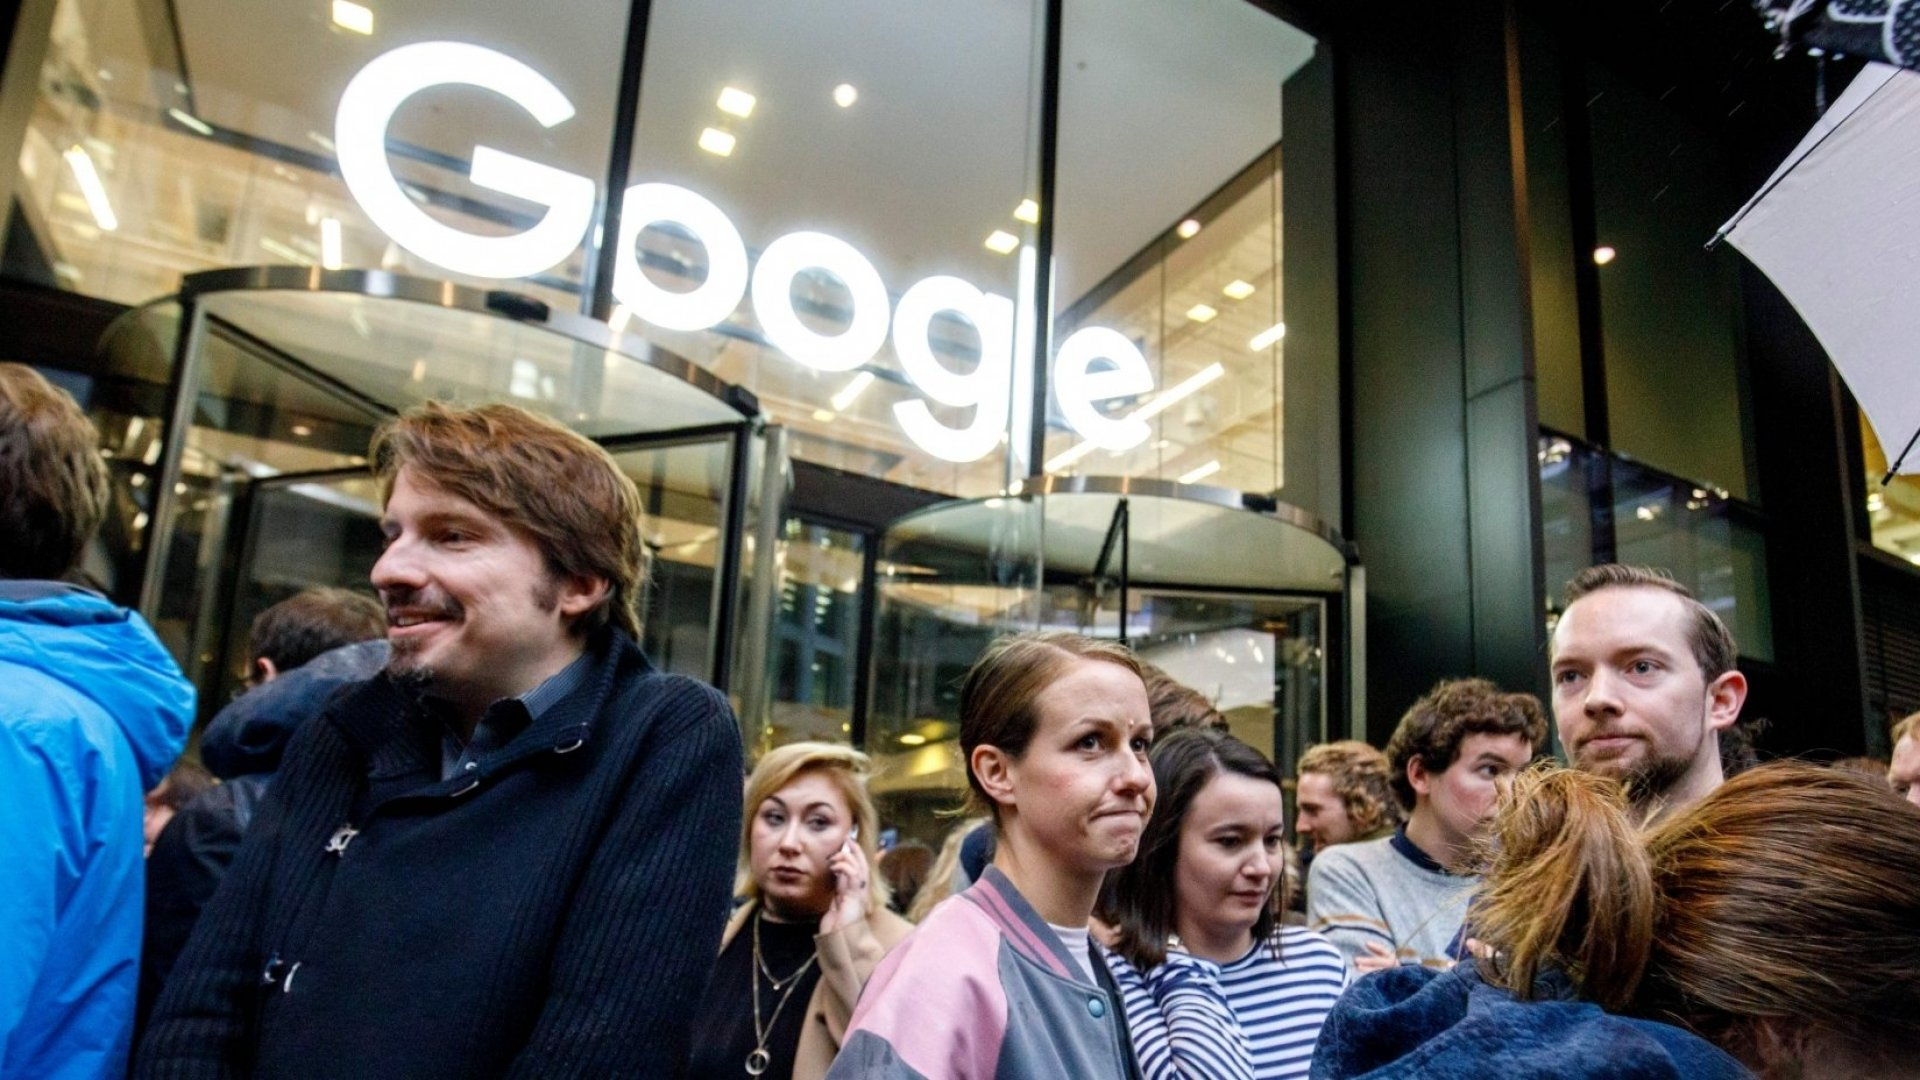 Google Just Got Really Bad News. Here's Why It'll Probably Get Worse, and What It Means for You